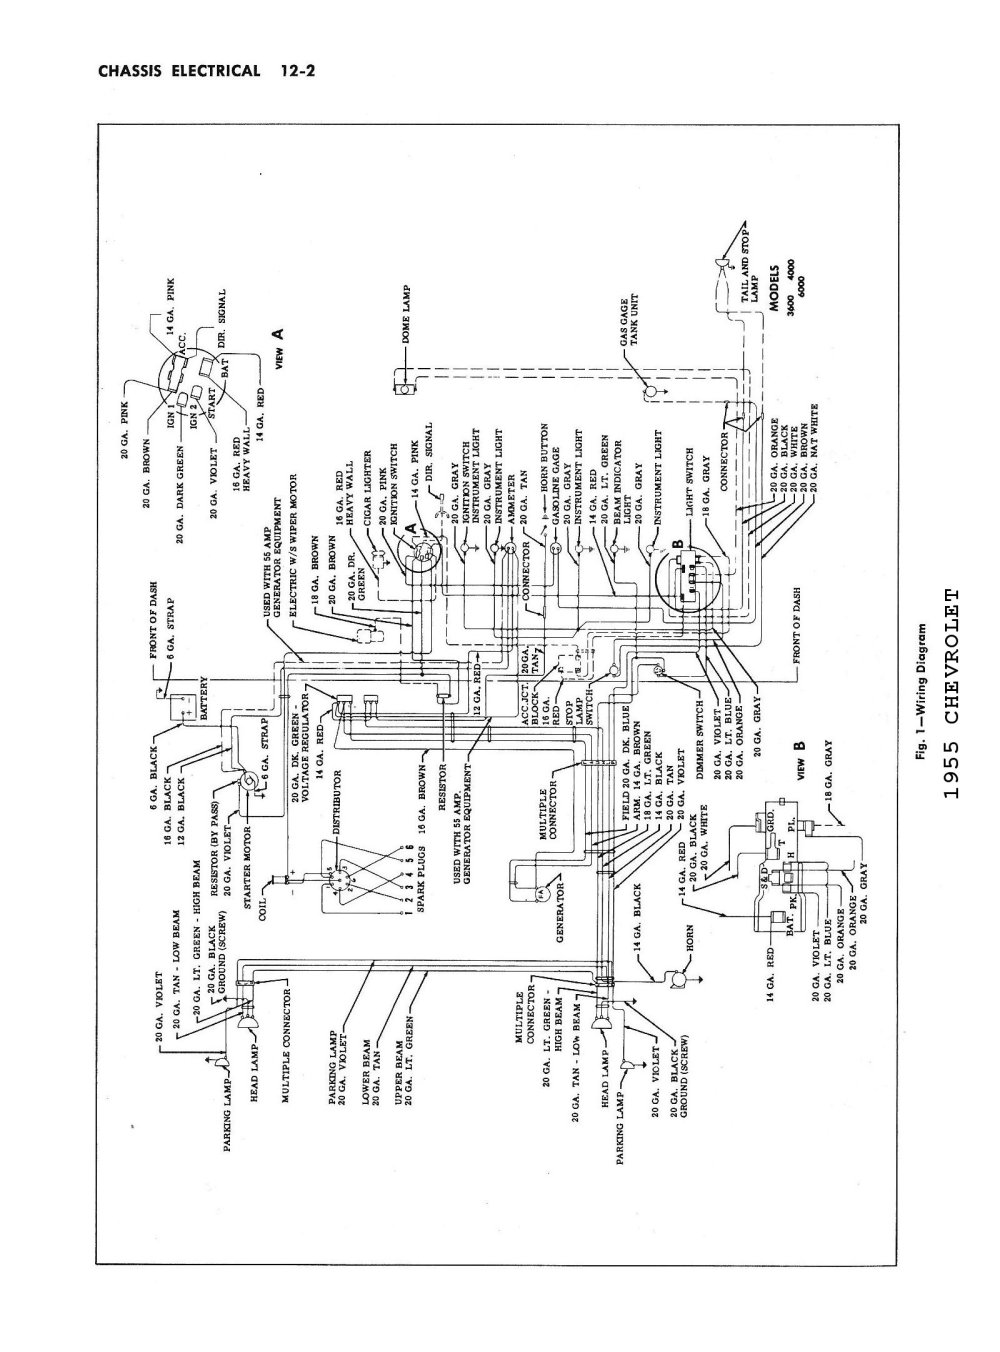 medium resolution of chevy wiring diagrams1955 chevy truck wiring harness 13